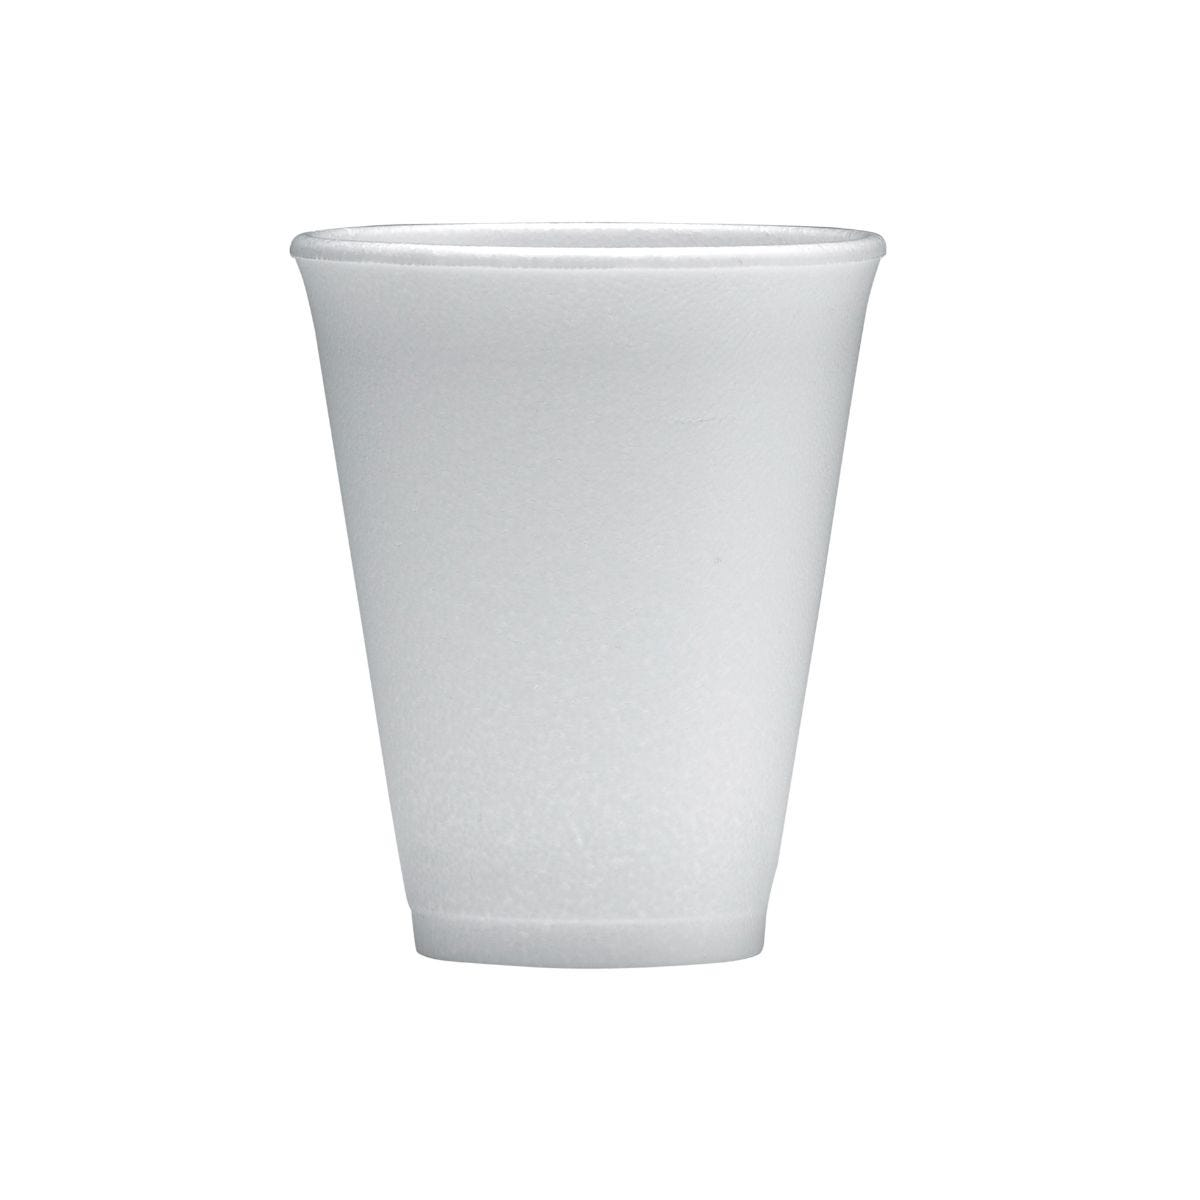 Image of 10oz Polystyrene Cups, White